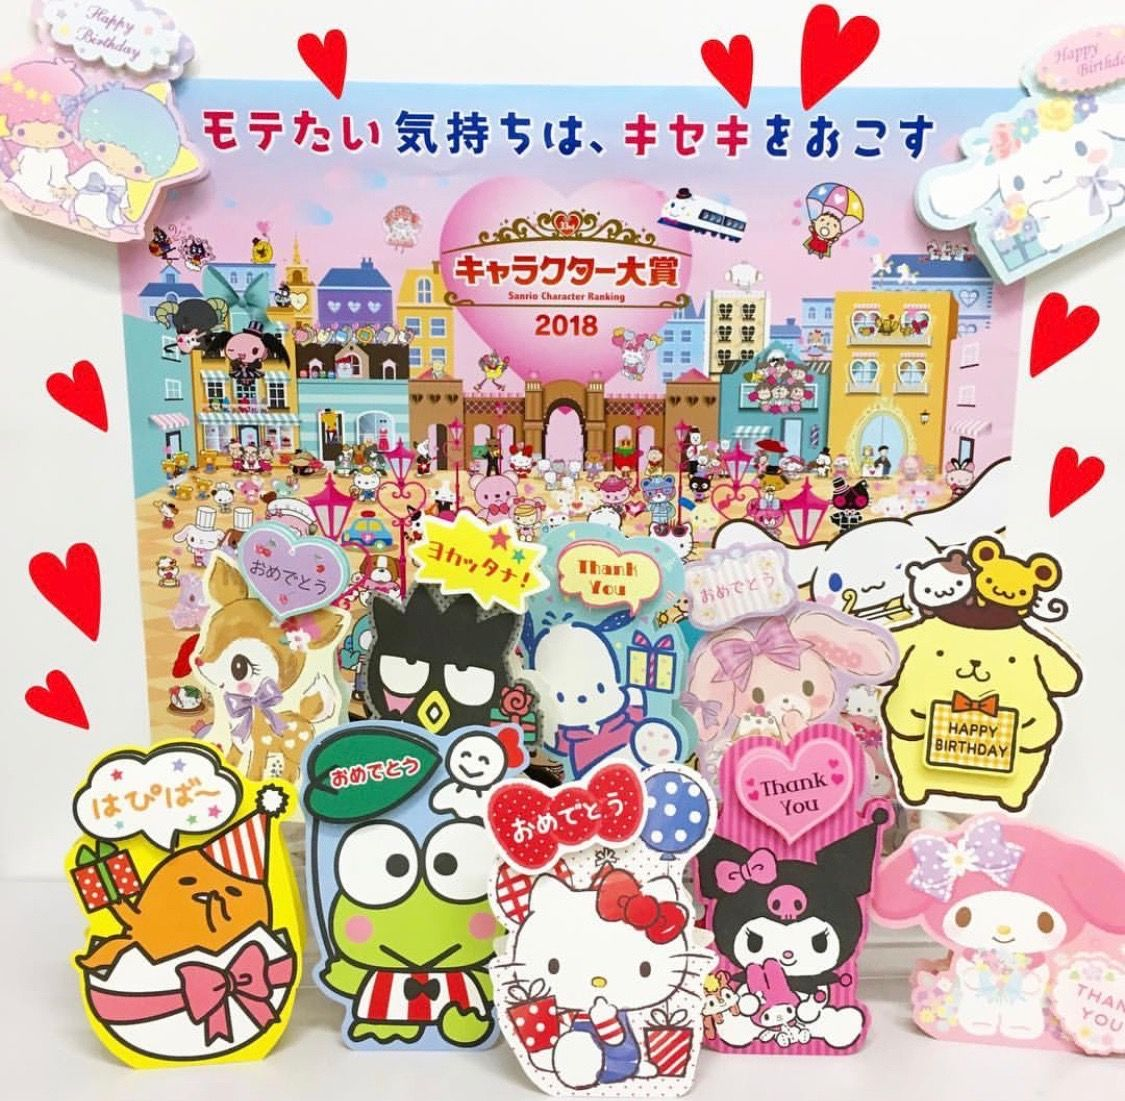 Sanrio Greeting Cards Character Vote Opens Now